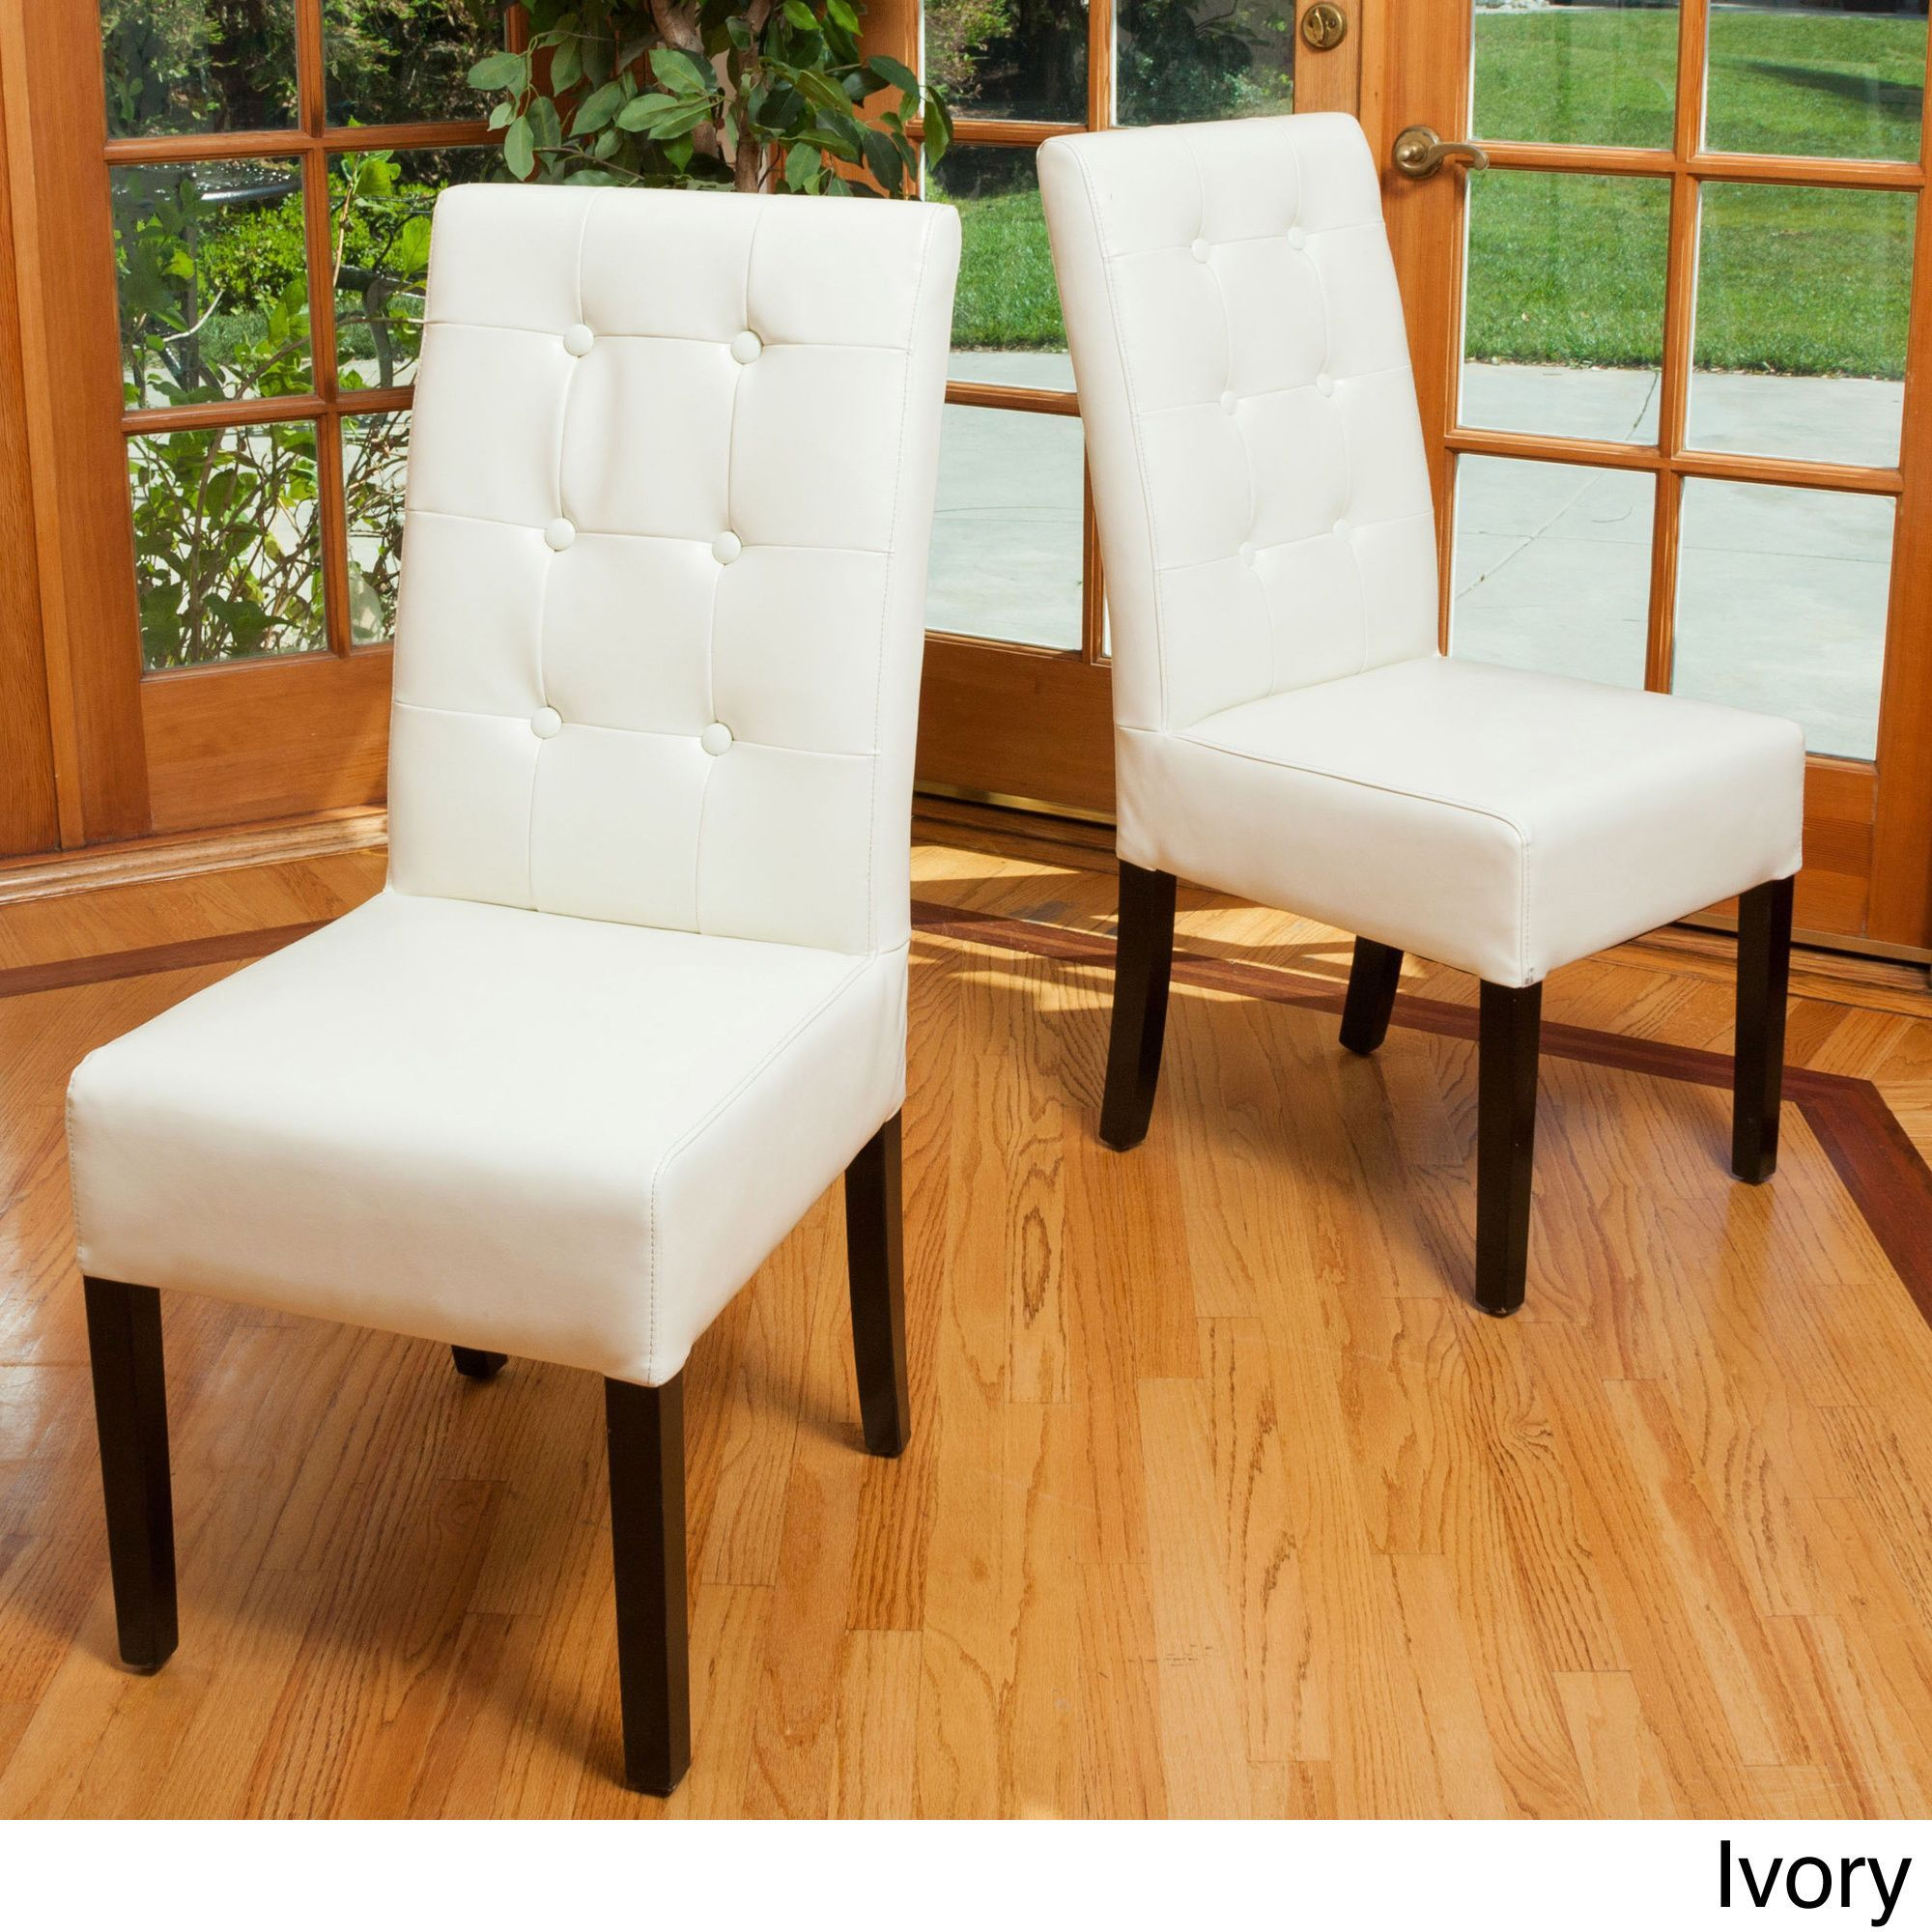 Christopher Knight Home Jace On Tufted Leather Dining Chair Set Of 2 Ivory Beige Off White Bonded